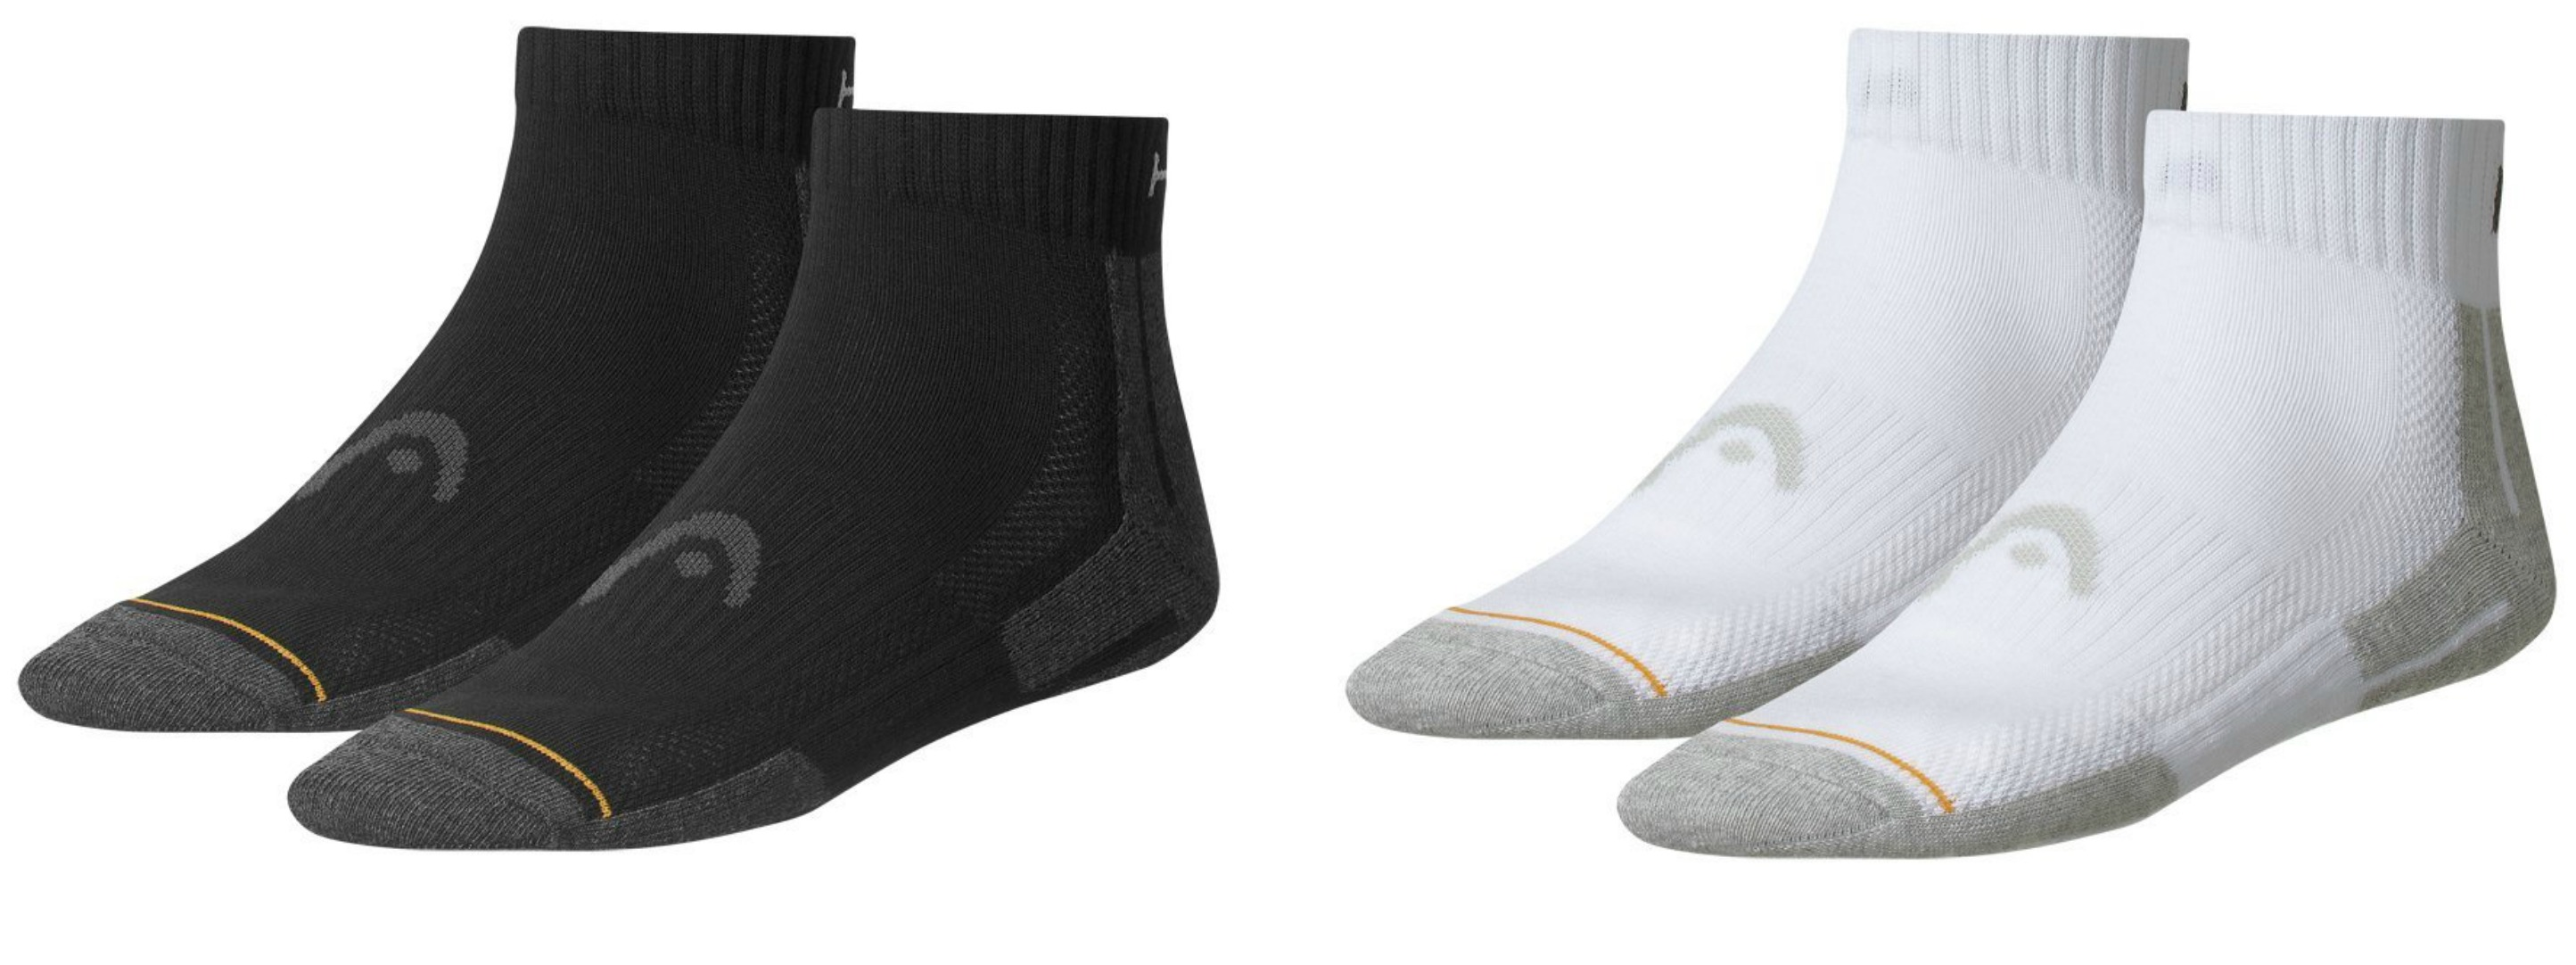 4 Paar Head Performance Quarter Socken